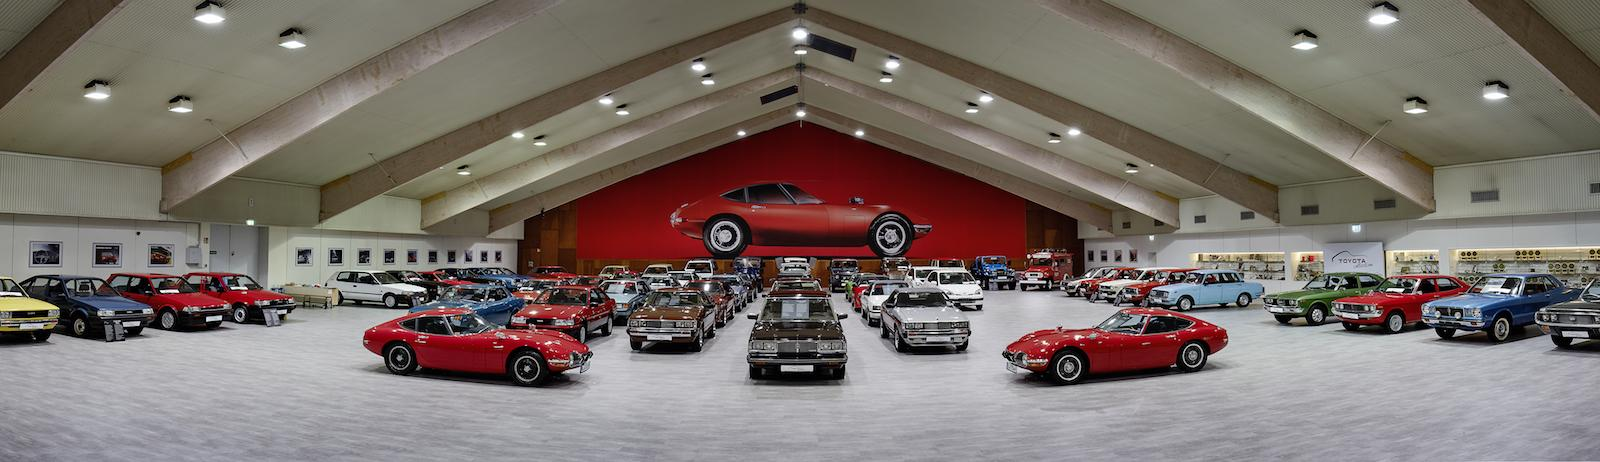 Doors open at German Toyota Collection